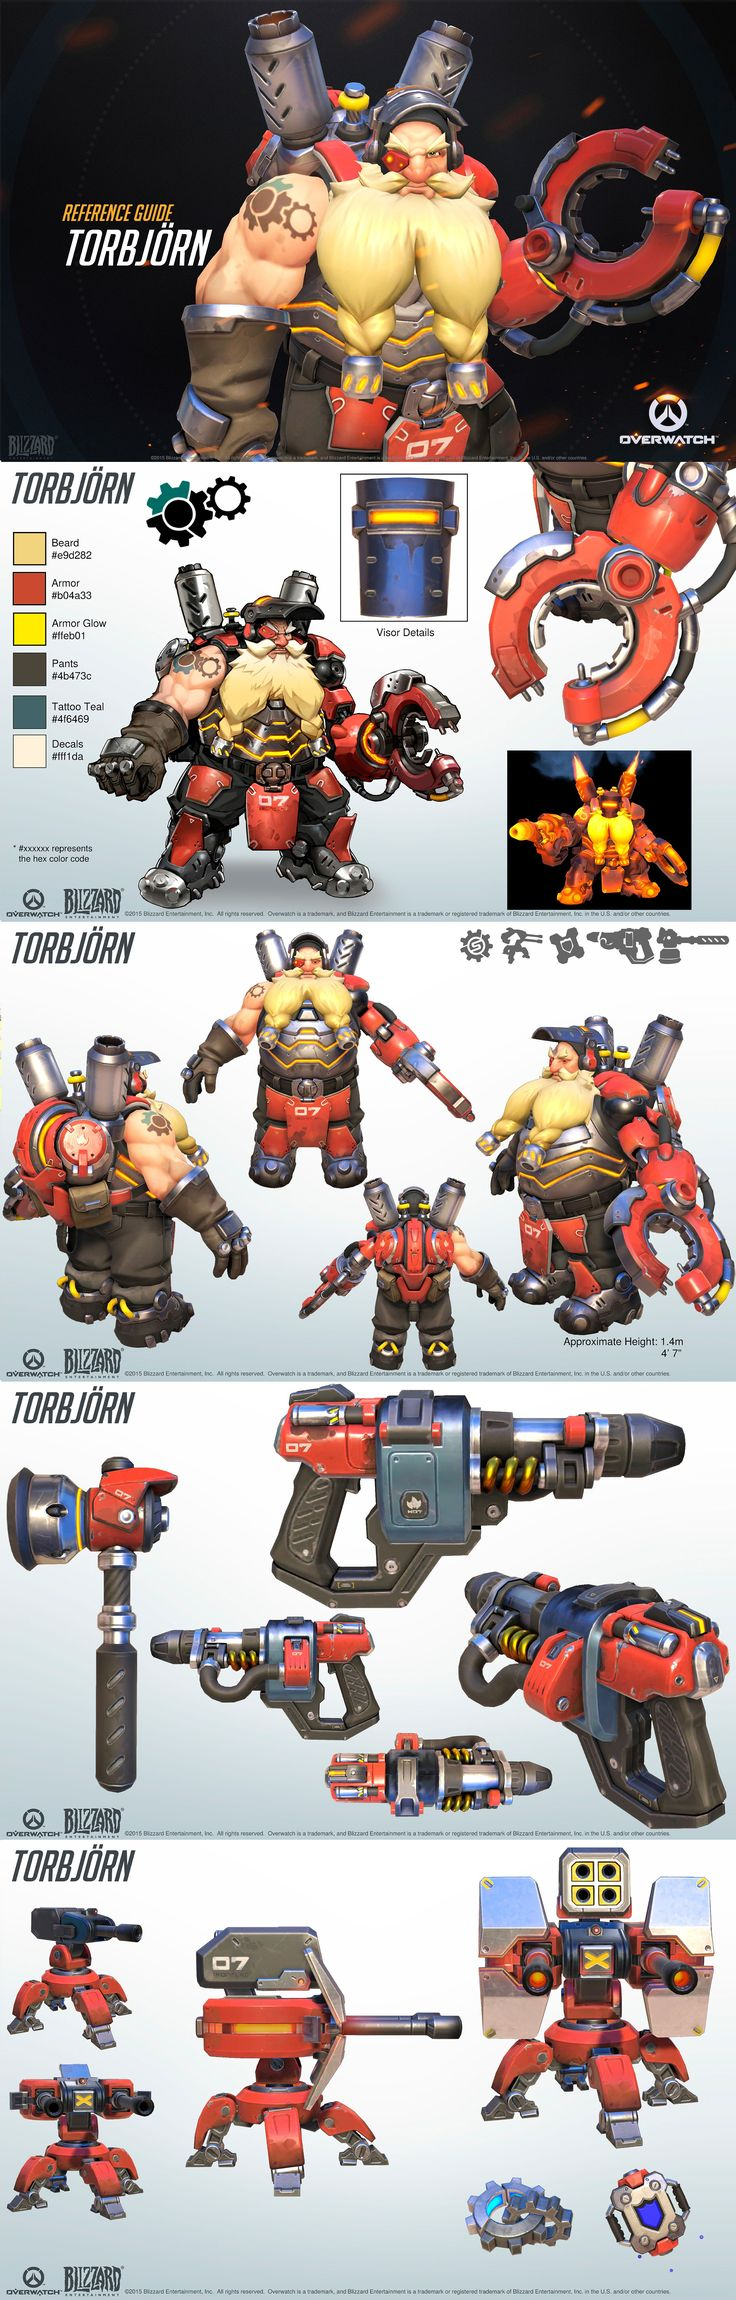 Character Design Guide : Best images about overwatch blizzard on pinterest